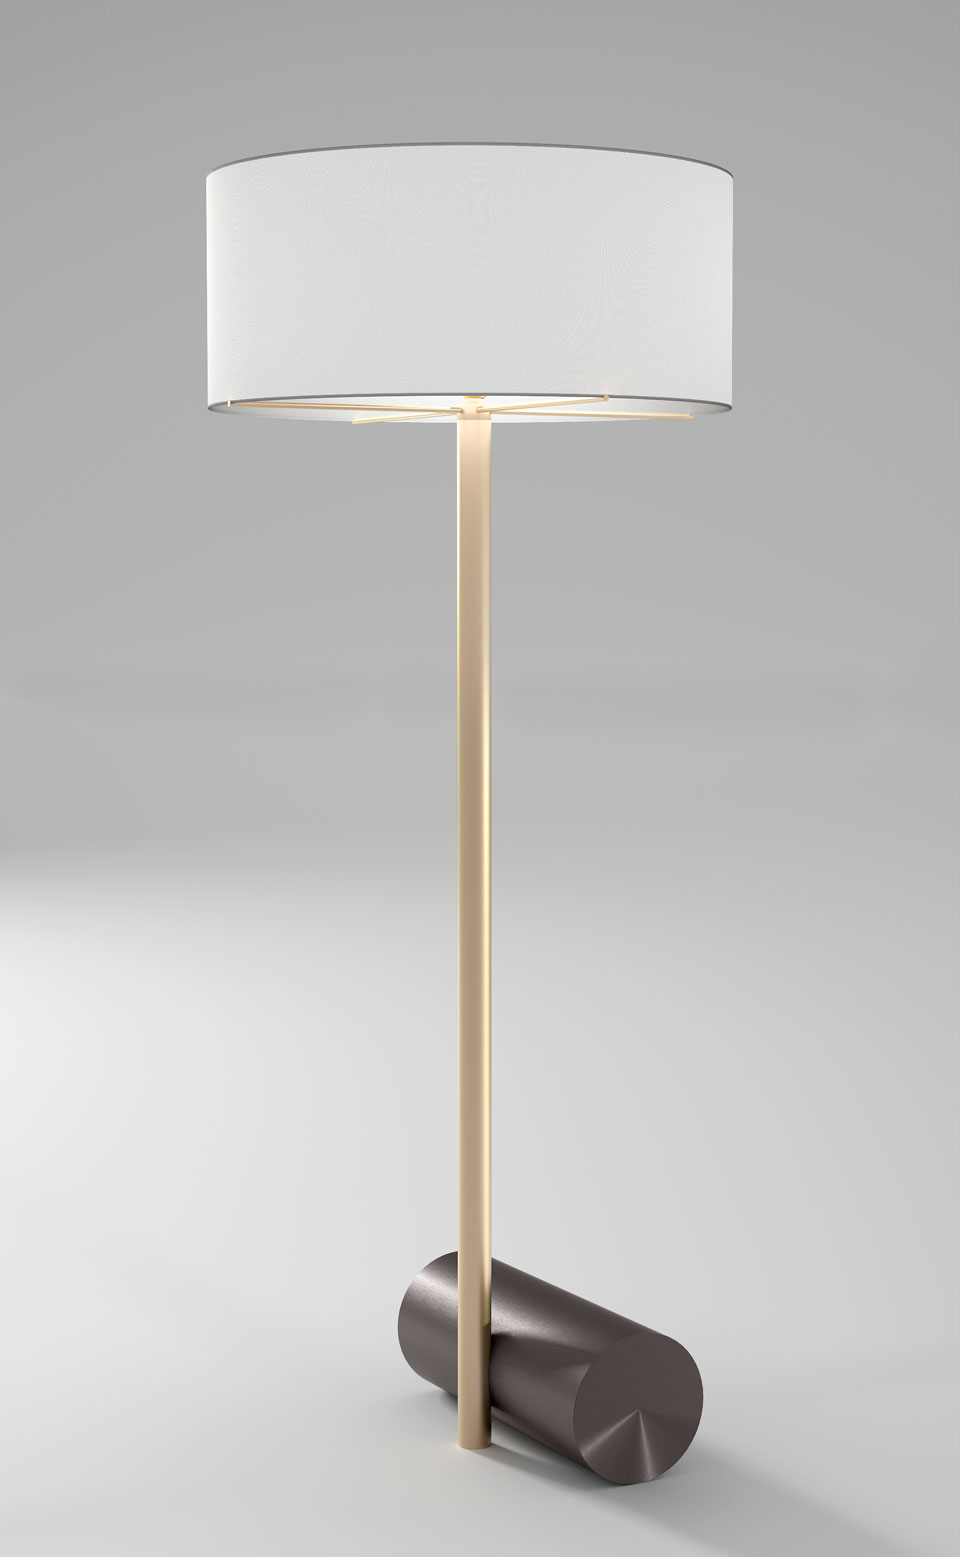 Calée XL large floor lamp, cylindrical base, satin brass and graphite. CVL Luminaires.